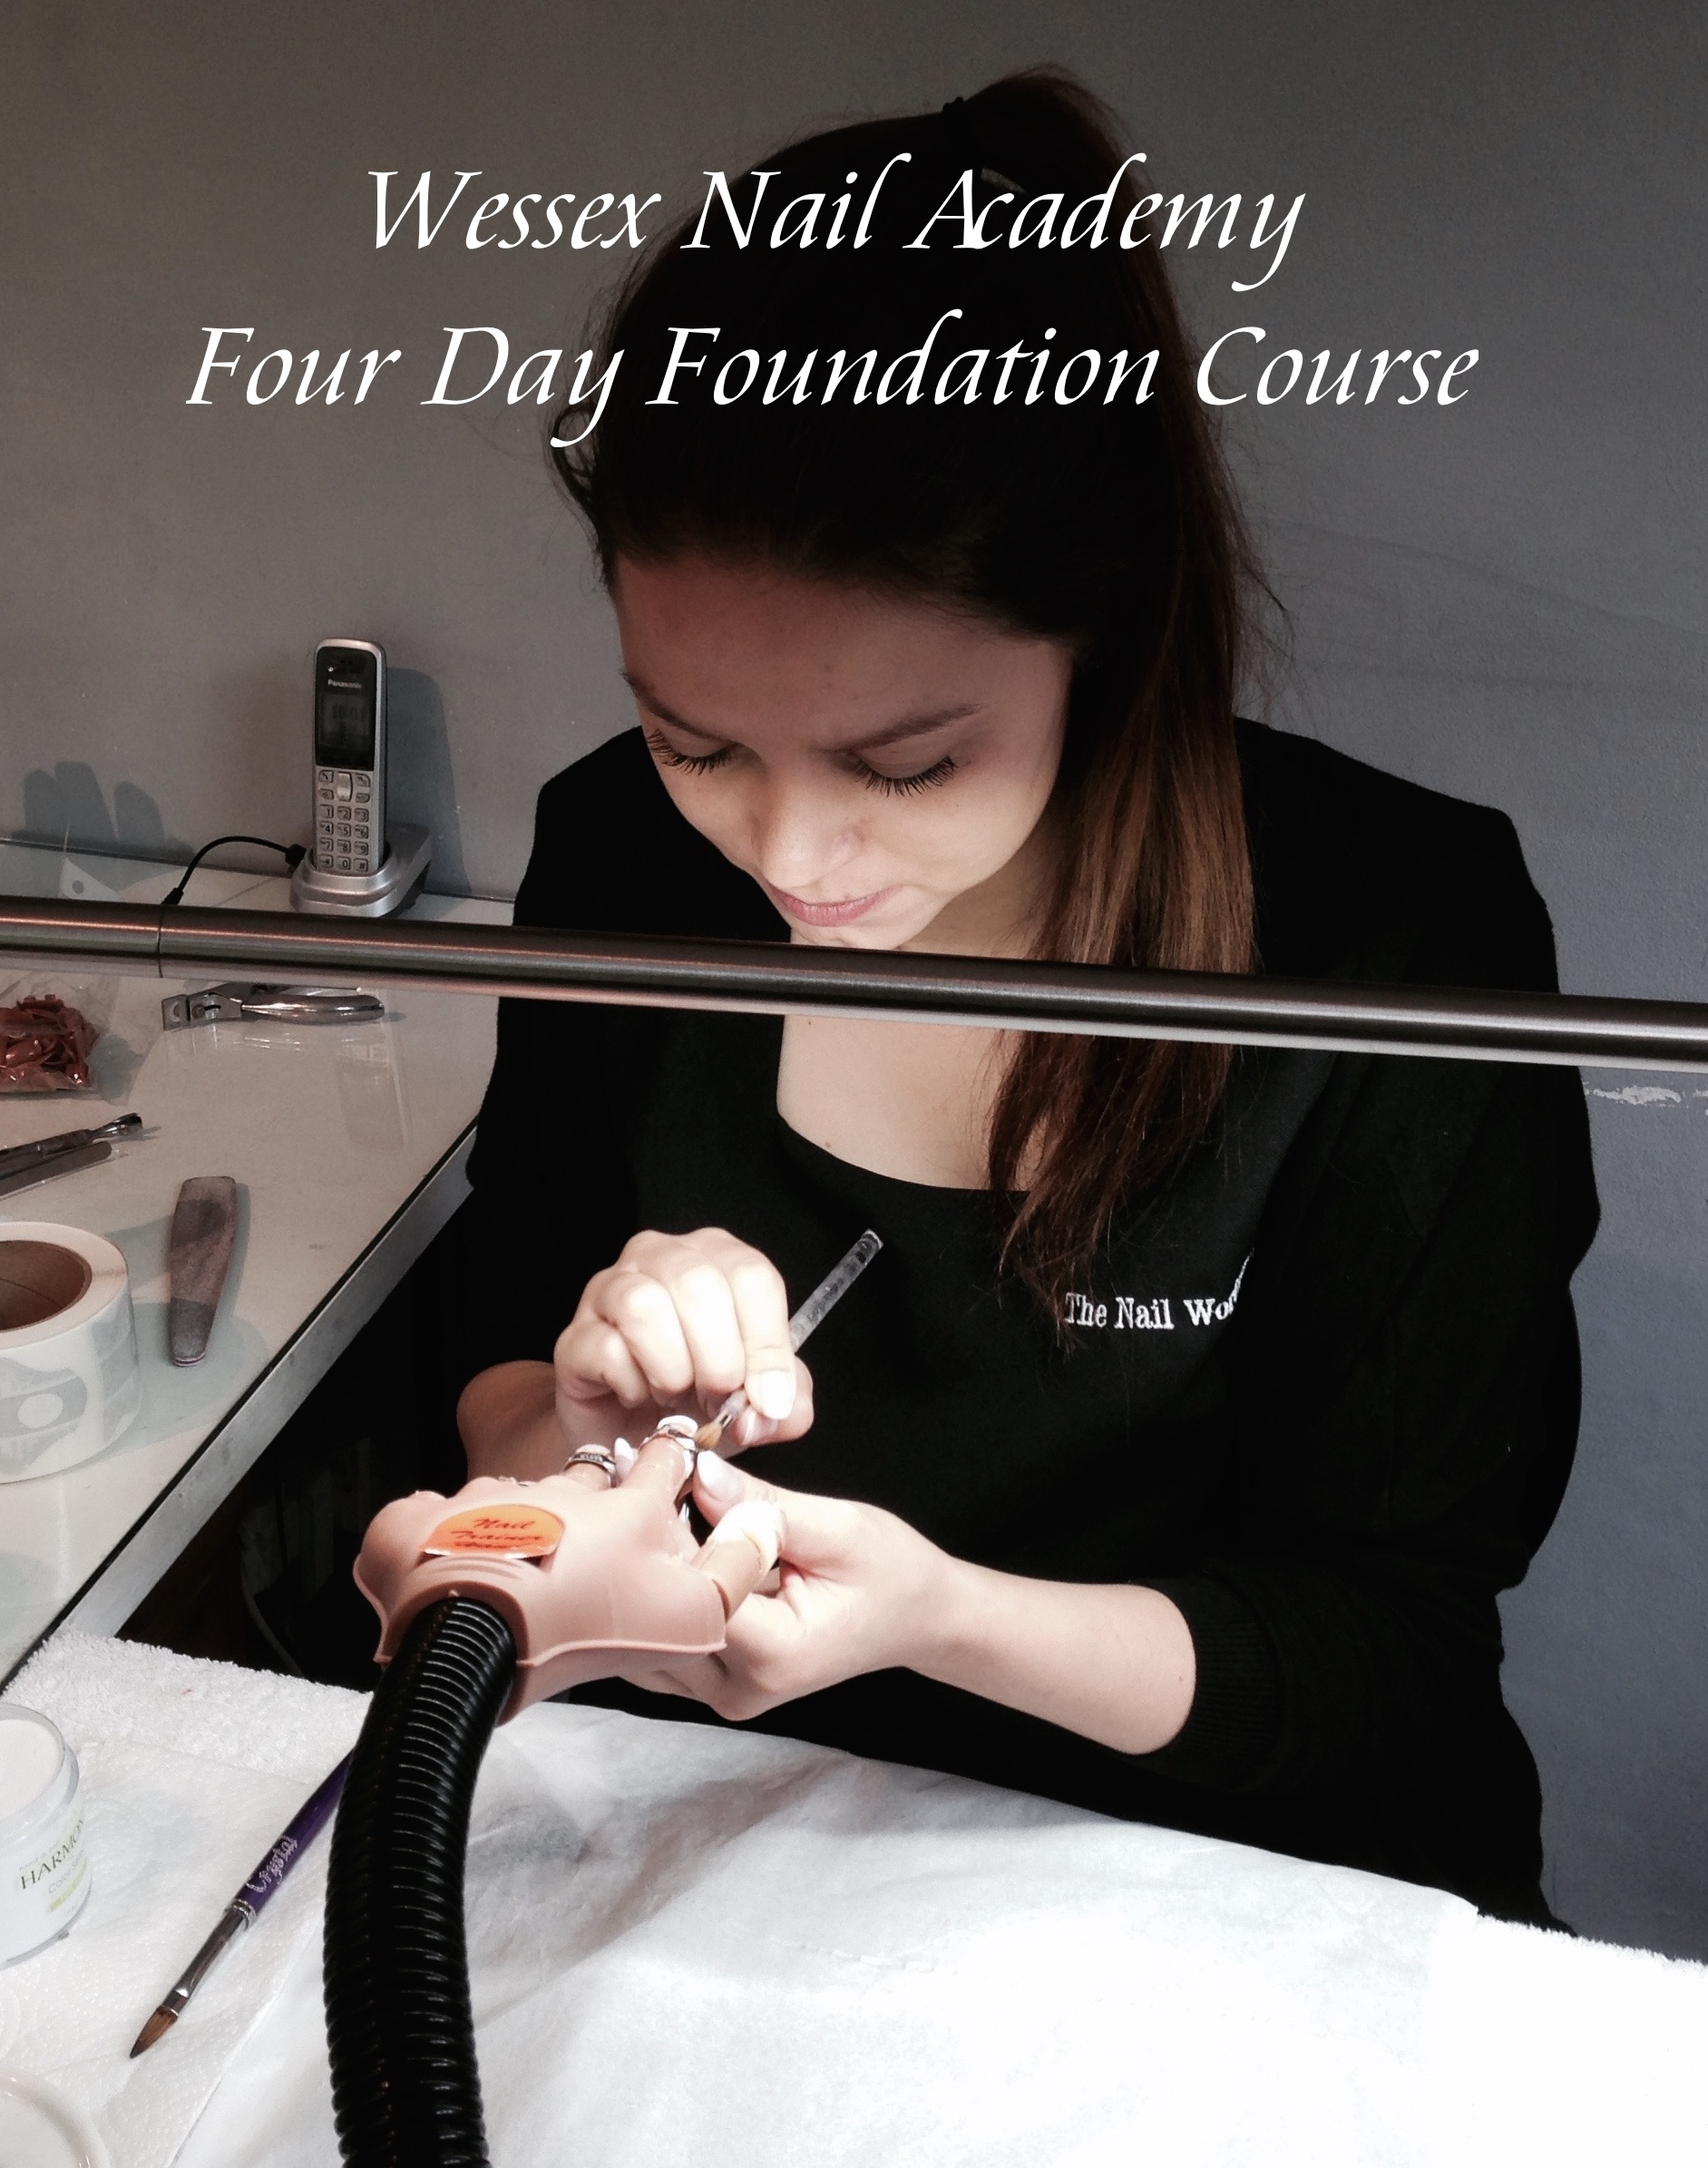 Acrylic nail Training course, Nail extension training , nail training course, Wessex Nail Academy Okeford Fitzpaine, Dorset